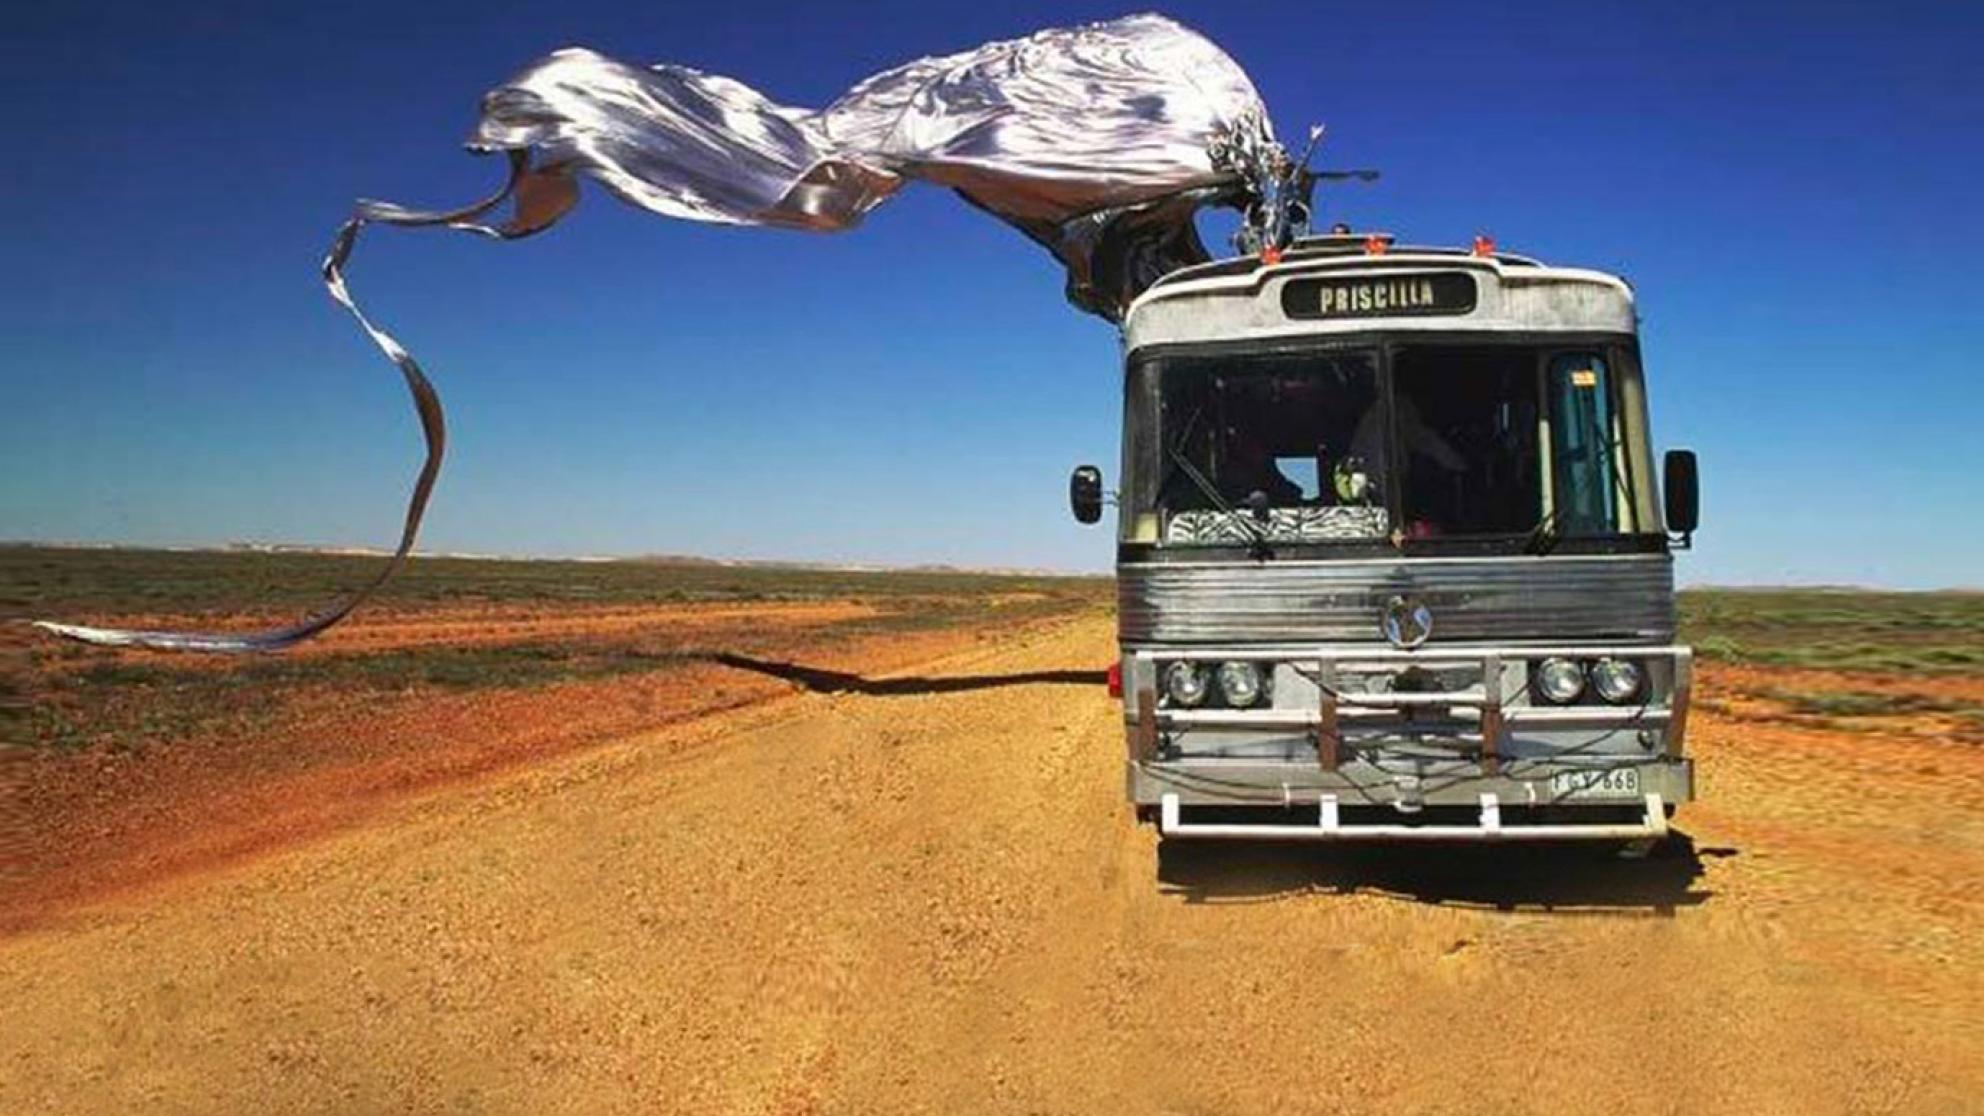 Scene from Priscilla, Queen of the Desert. A tour bus on a dirt road in the desert with blue sky in the background. On top of the bus is Guy Pearce in a shiny silver frock sitting on a giant stiletto shoe with a long train flowing behind the bus.